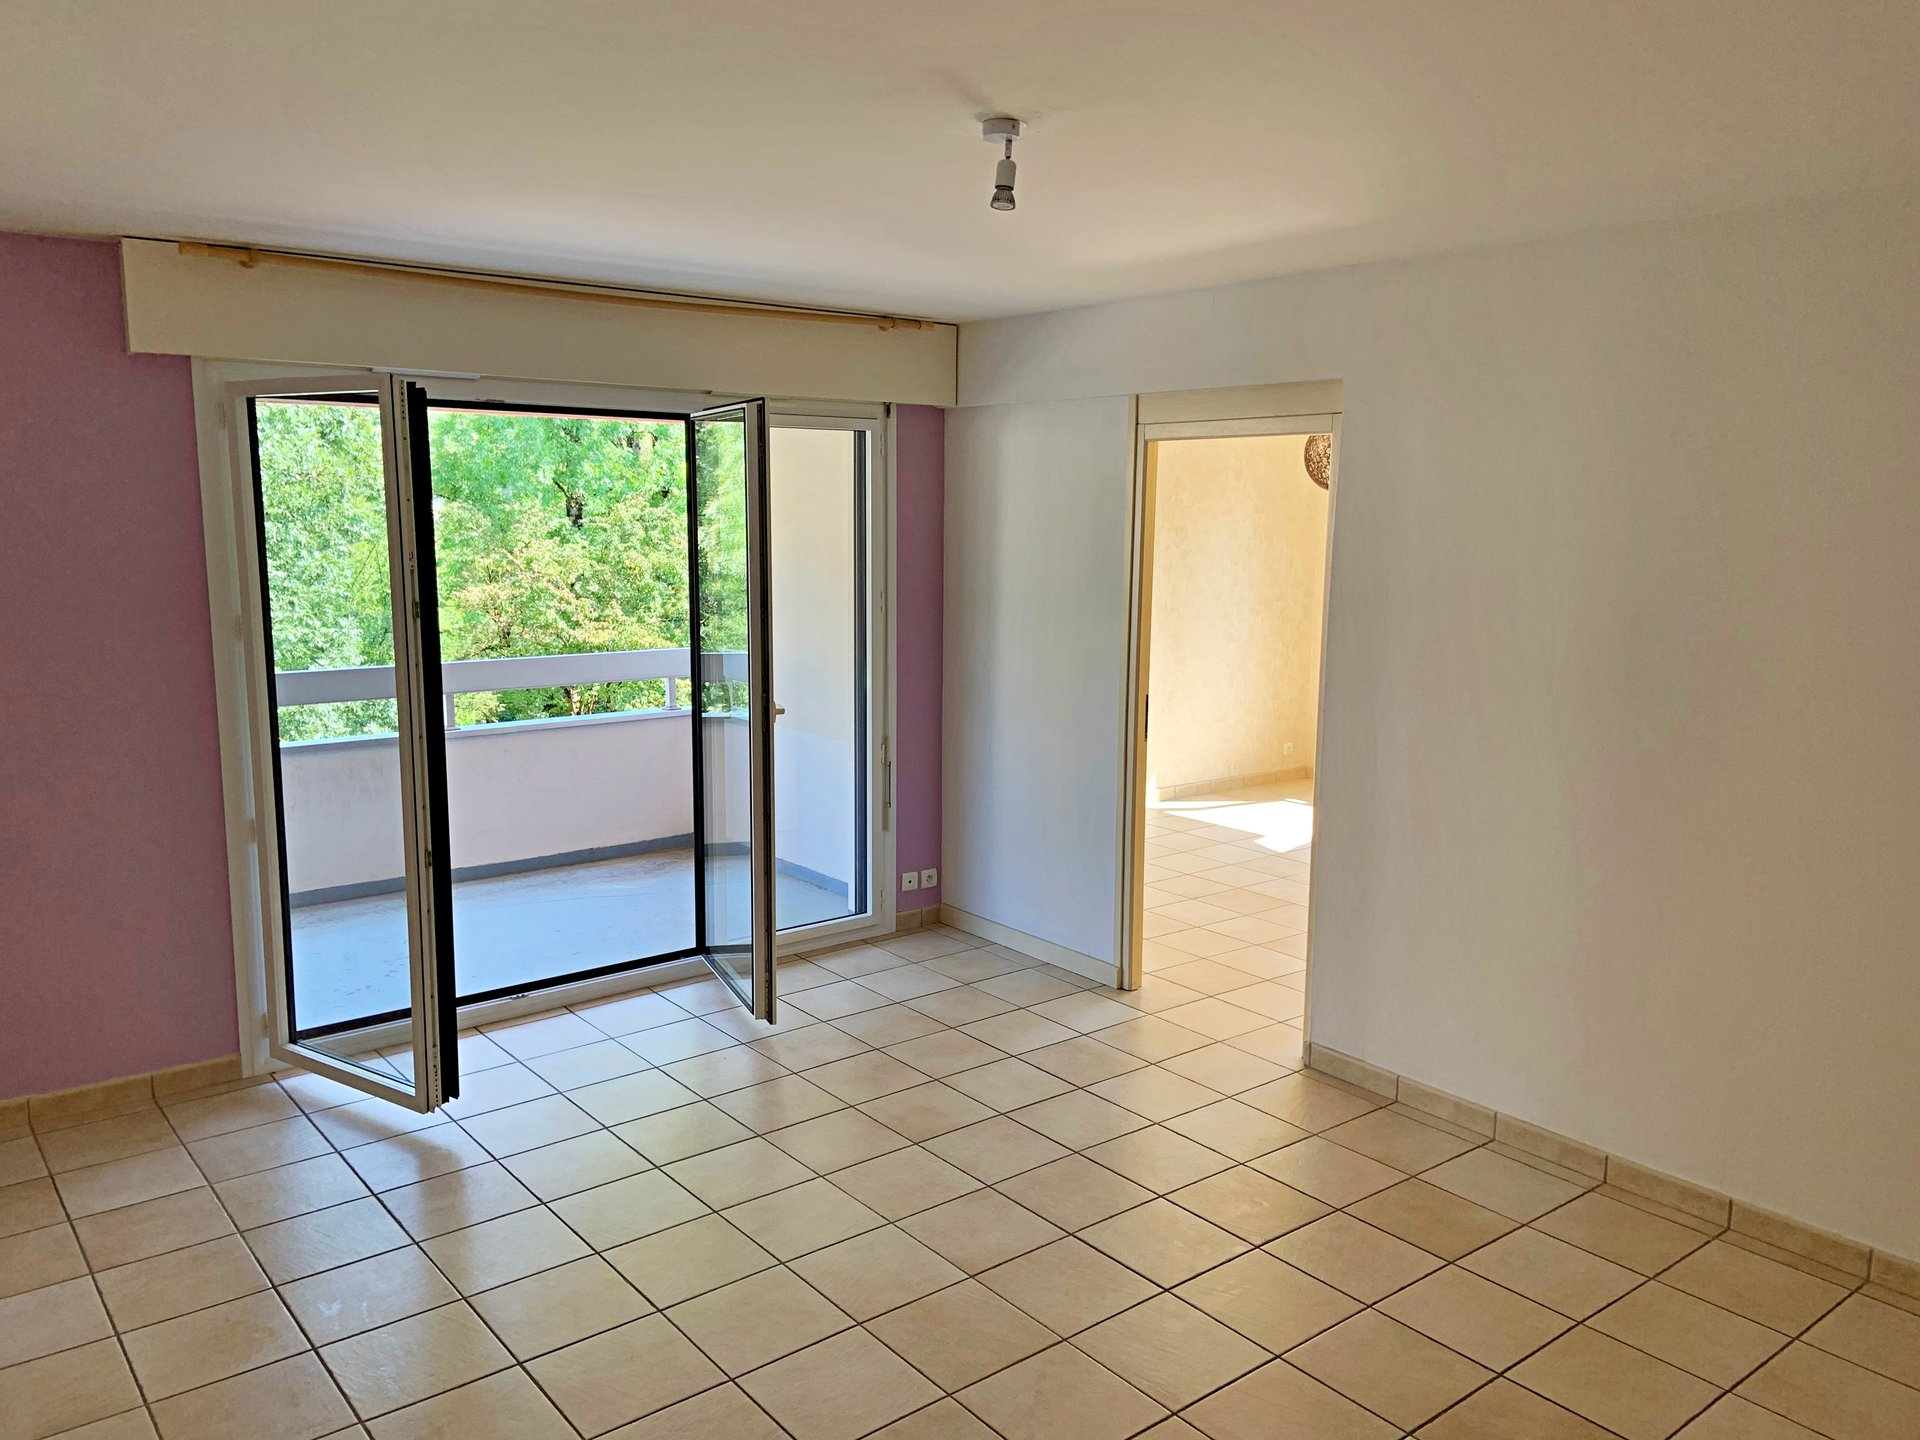 Sale Apartment - Bellegarde-sur-Valserine